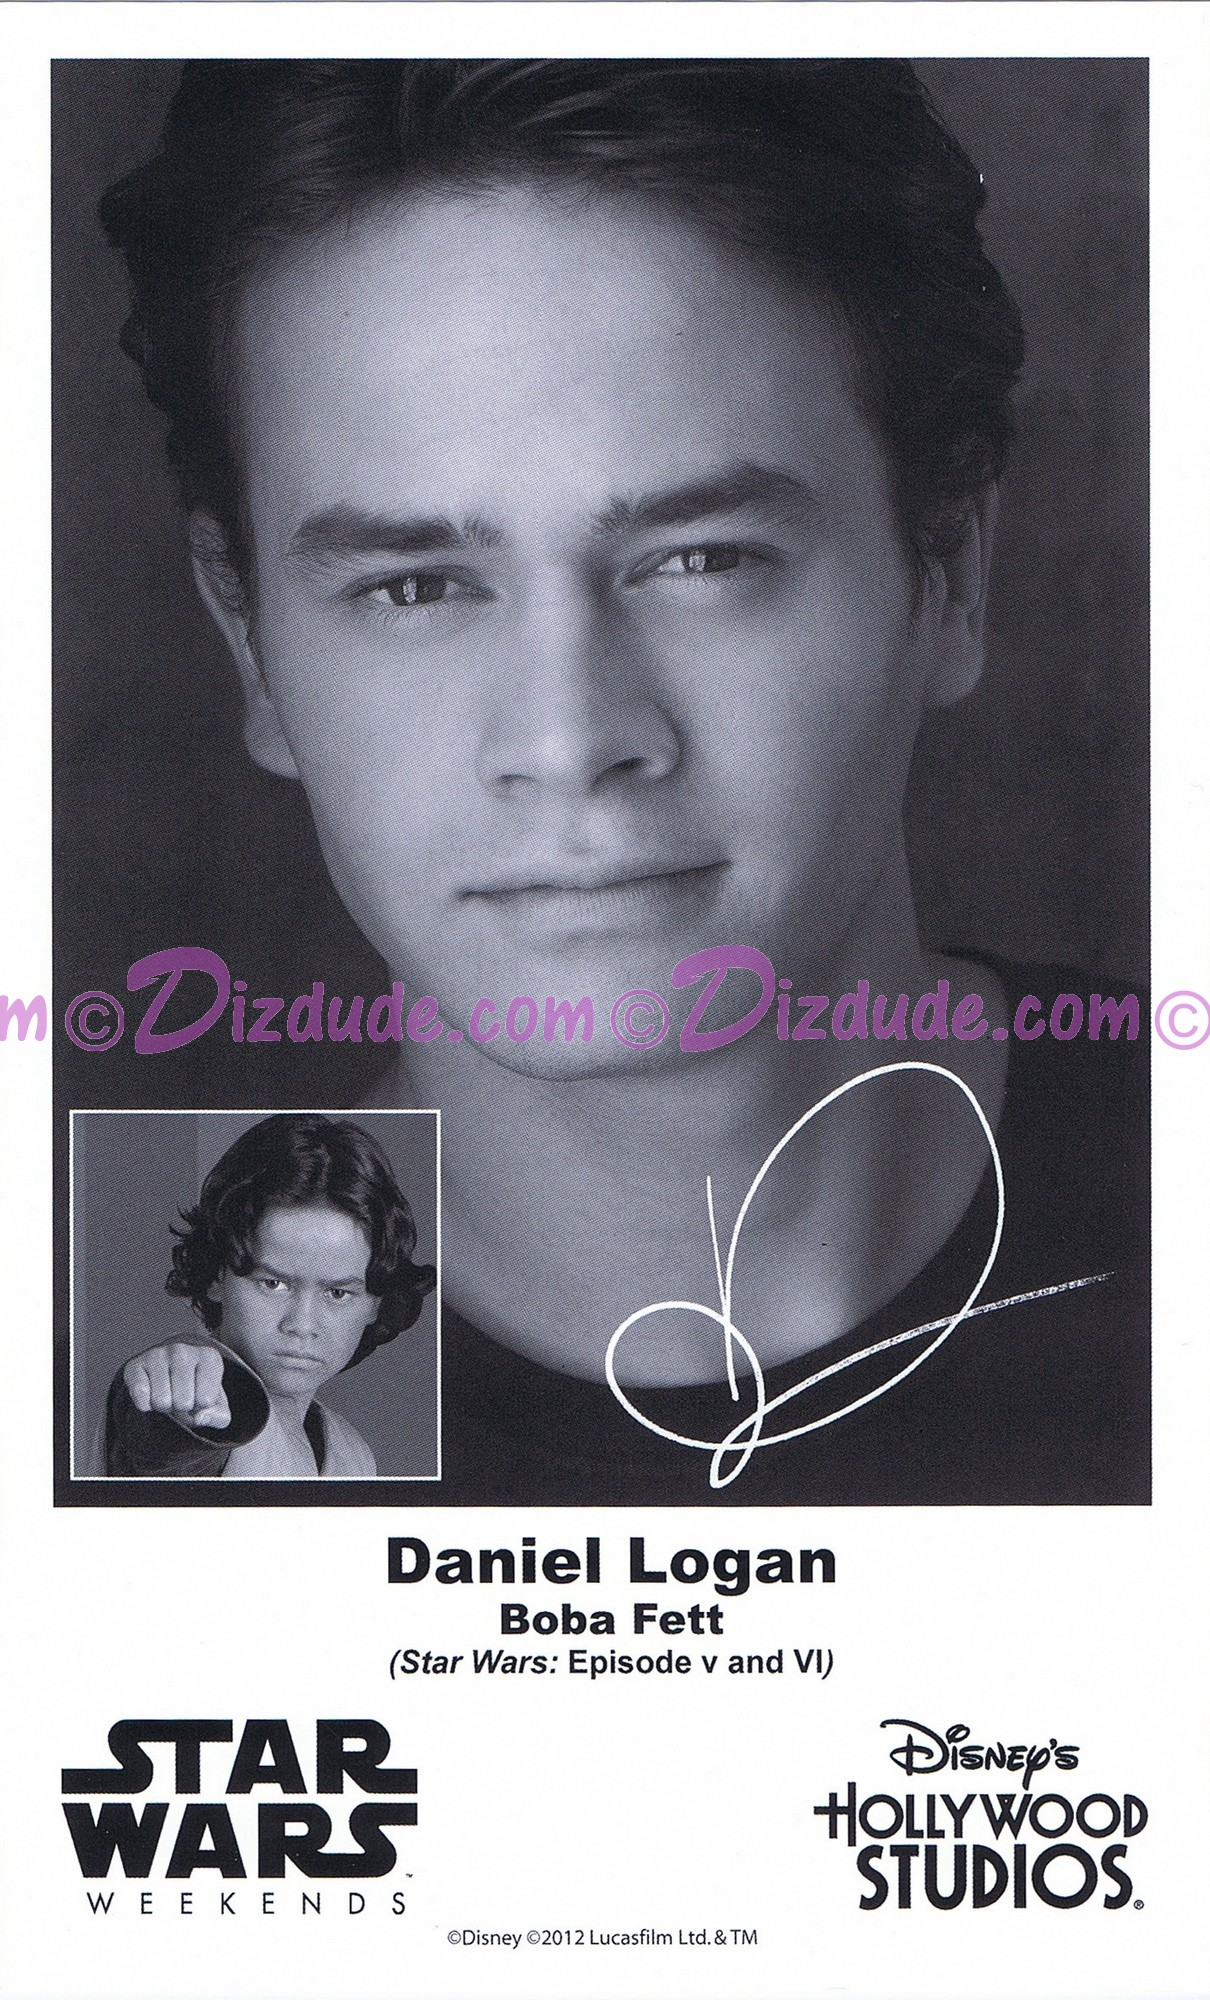 Daniel Logan who played Young Boba Fett Presigned Official Star Wars Weekends 2012 Celebrity Collector Photo